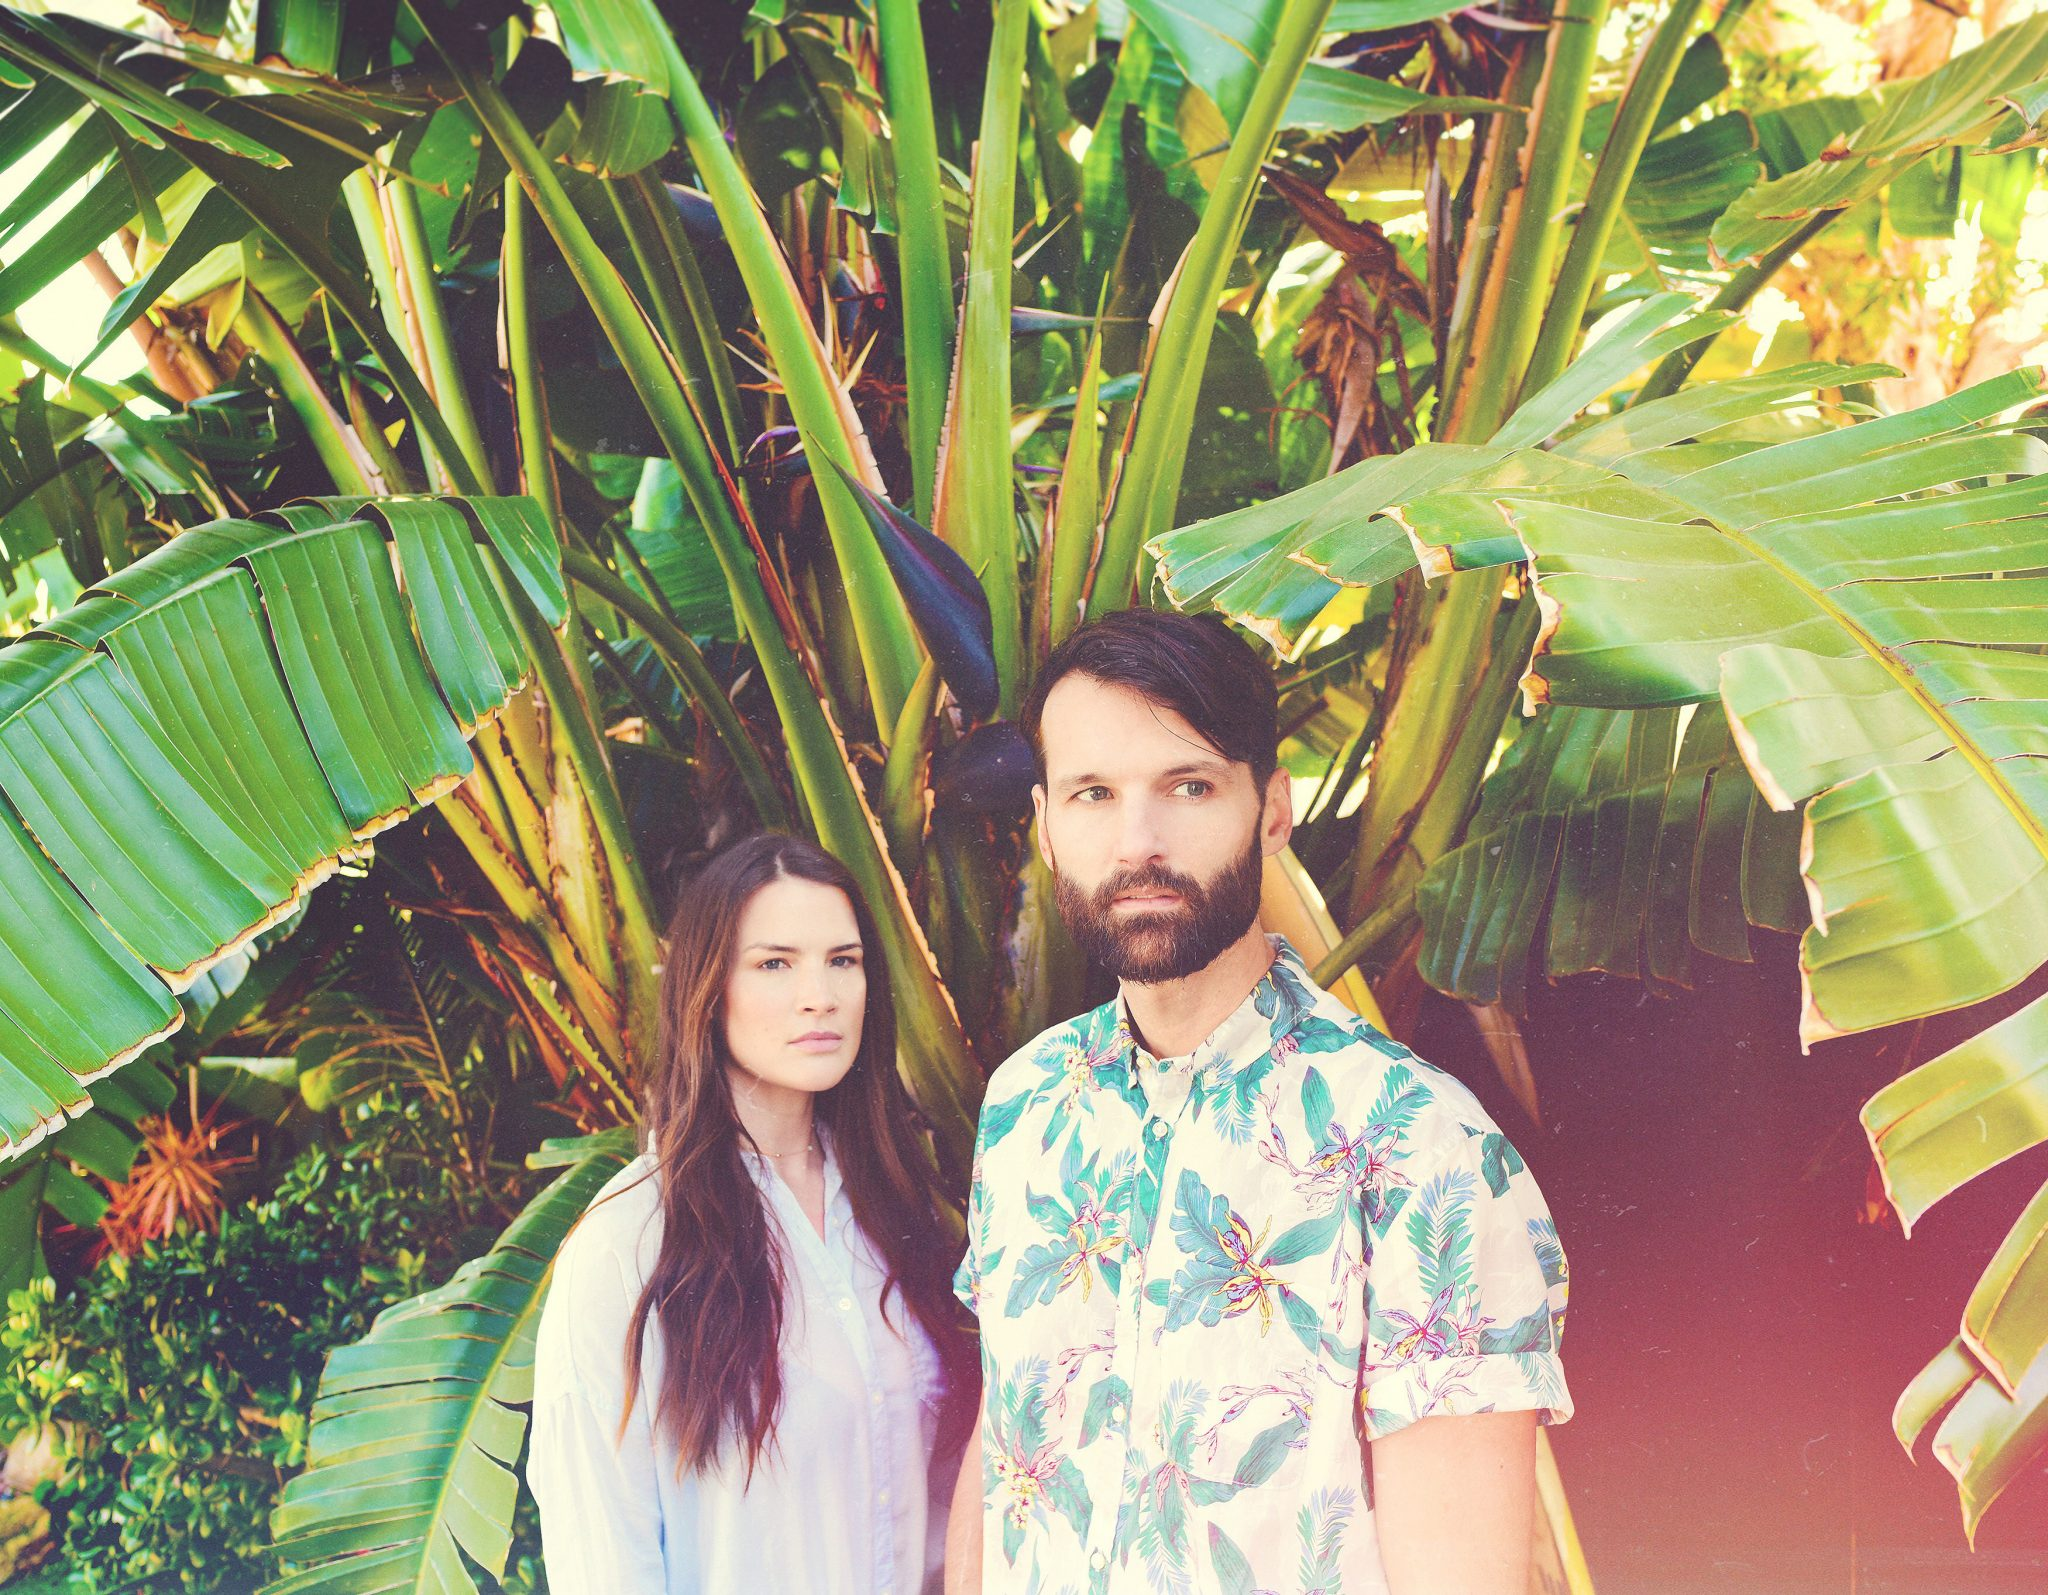 Bay Ledges: Relatable East to West Dream Pop